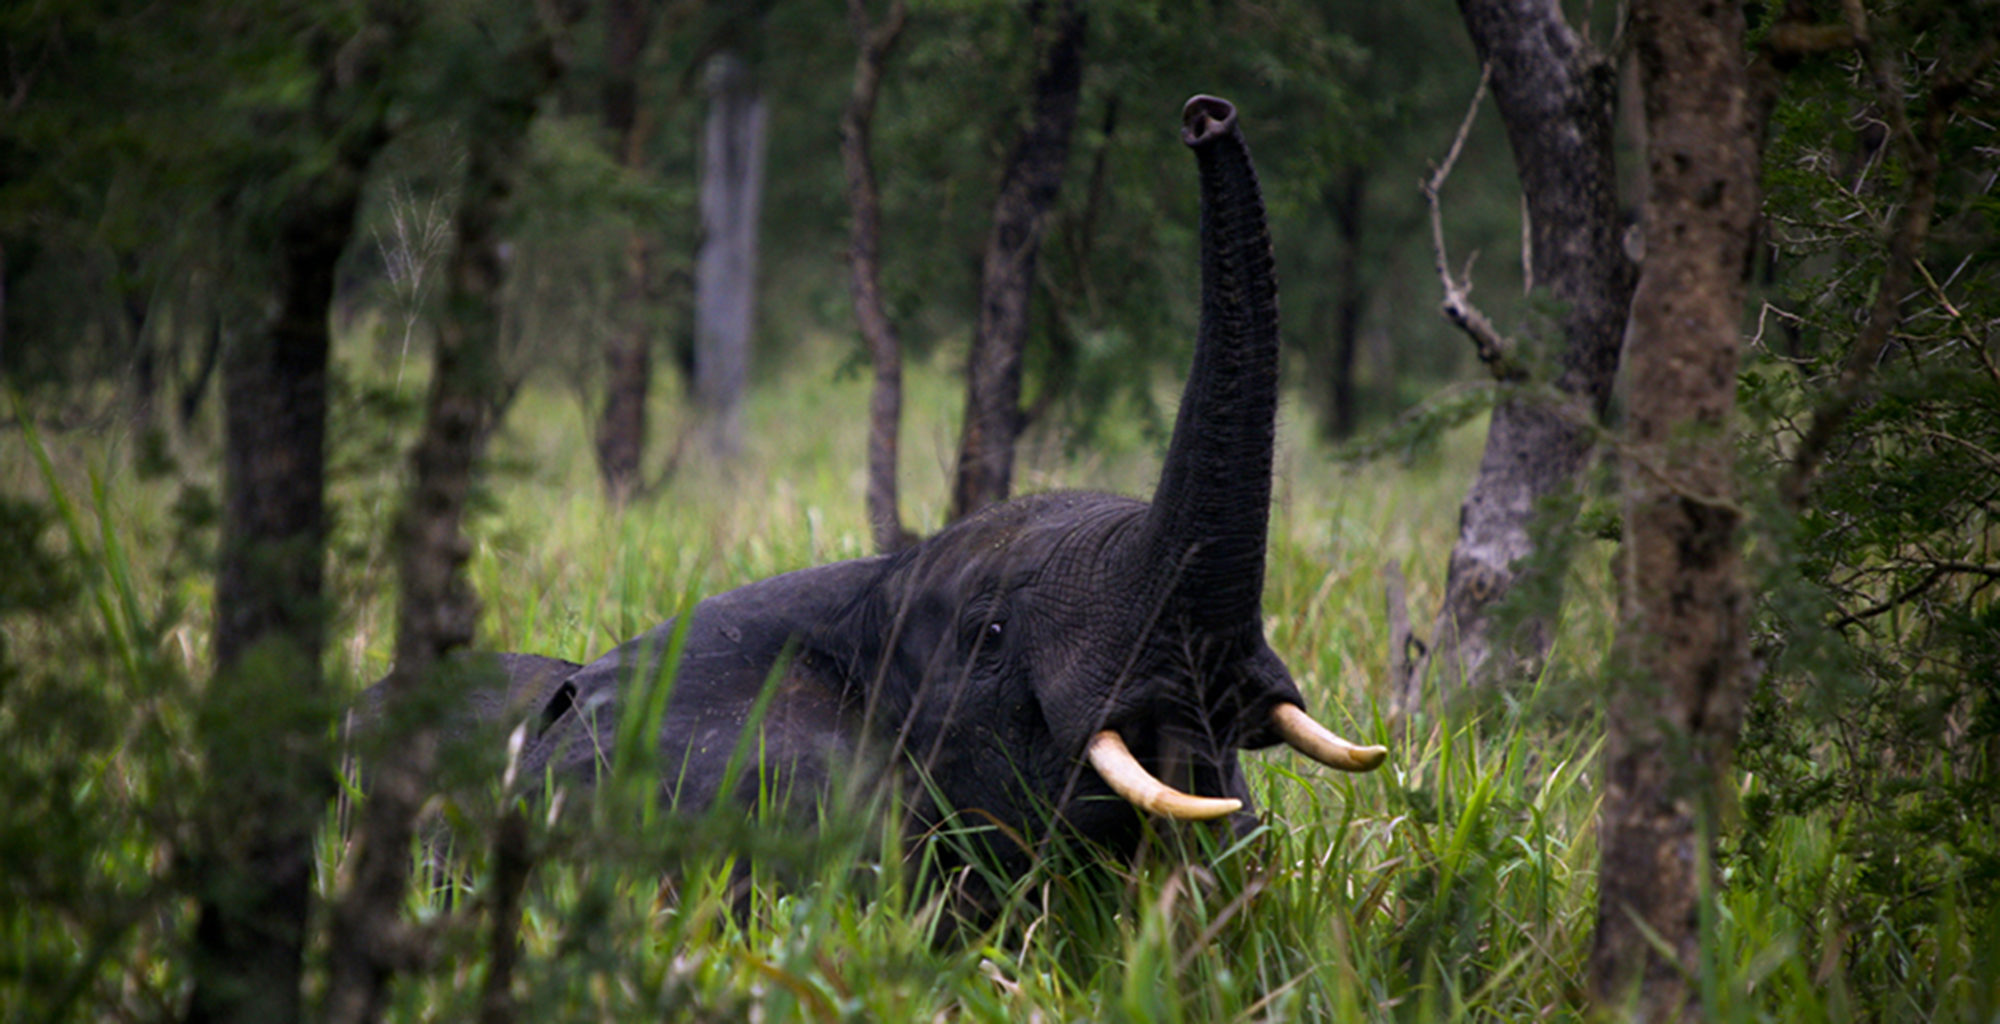 Uganda-Semliki-National-Park-Wildlife-Elephant